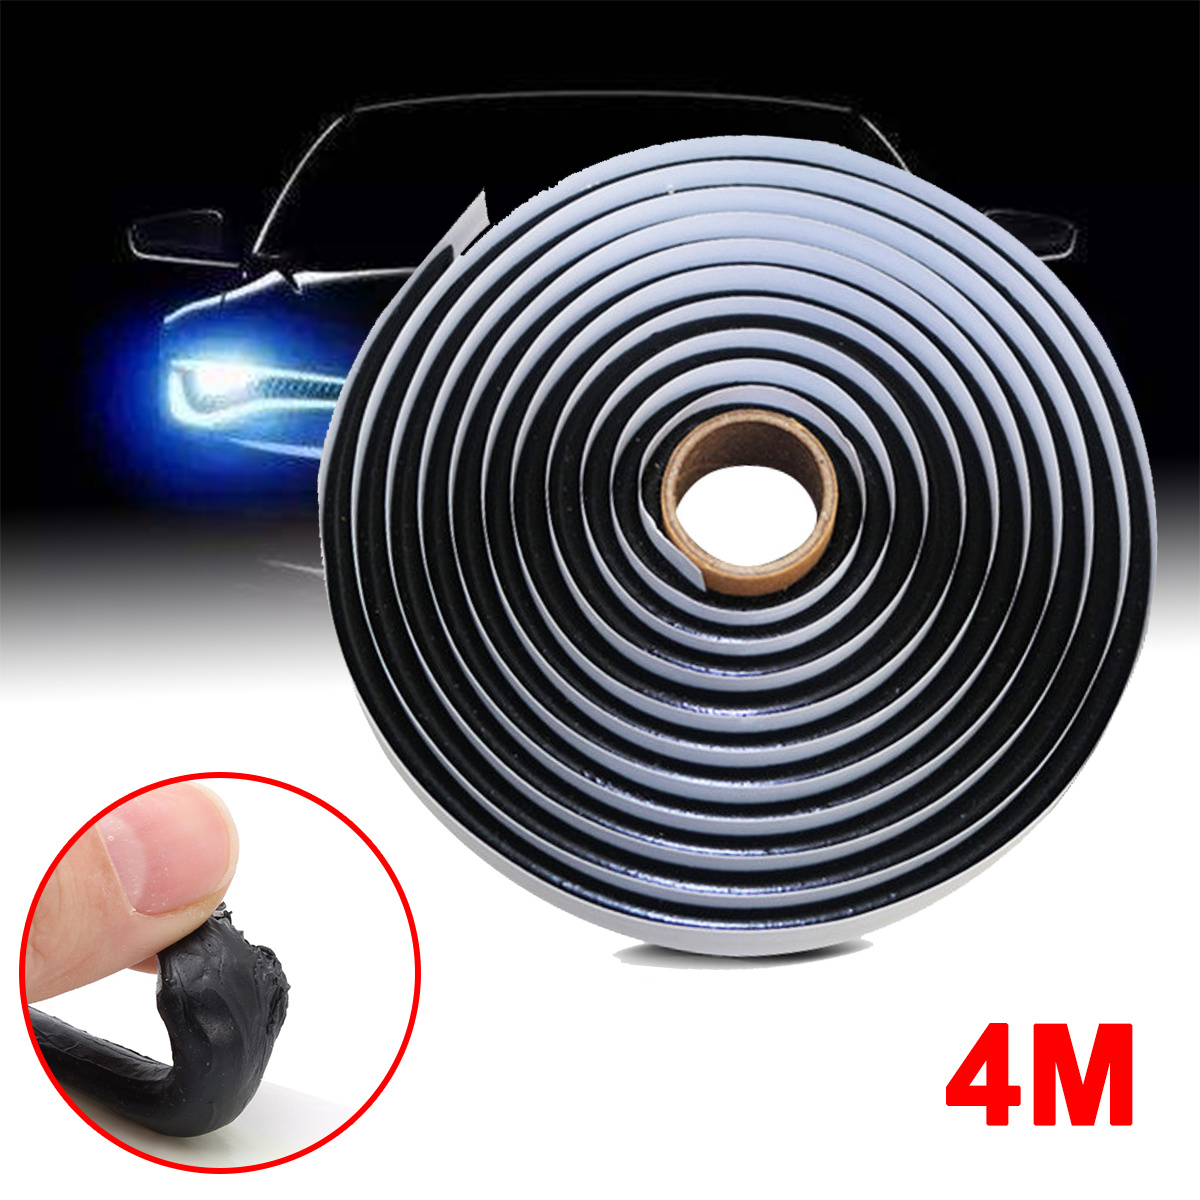 4M Car Truck Headlight LED Retrofit Reseal Strip Black Butyl Rubber Glue Sealant